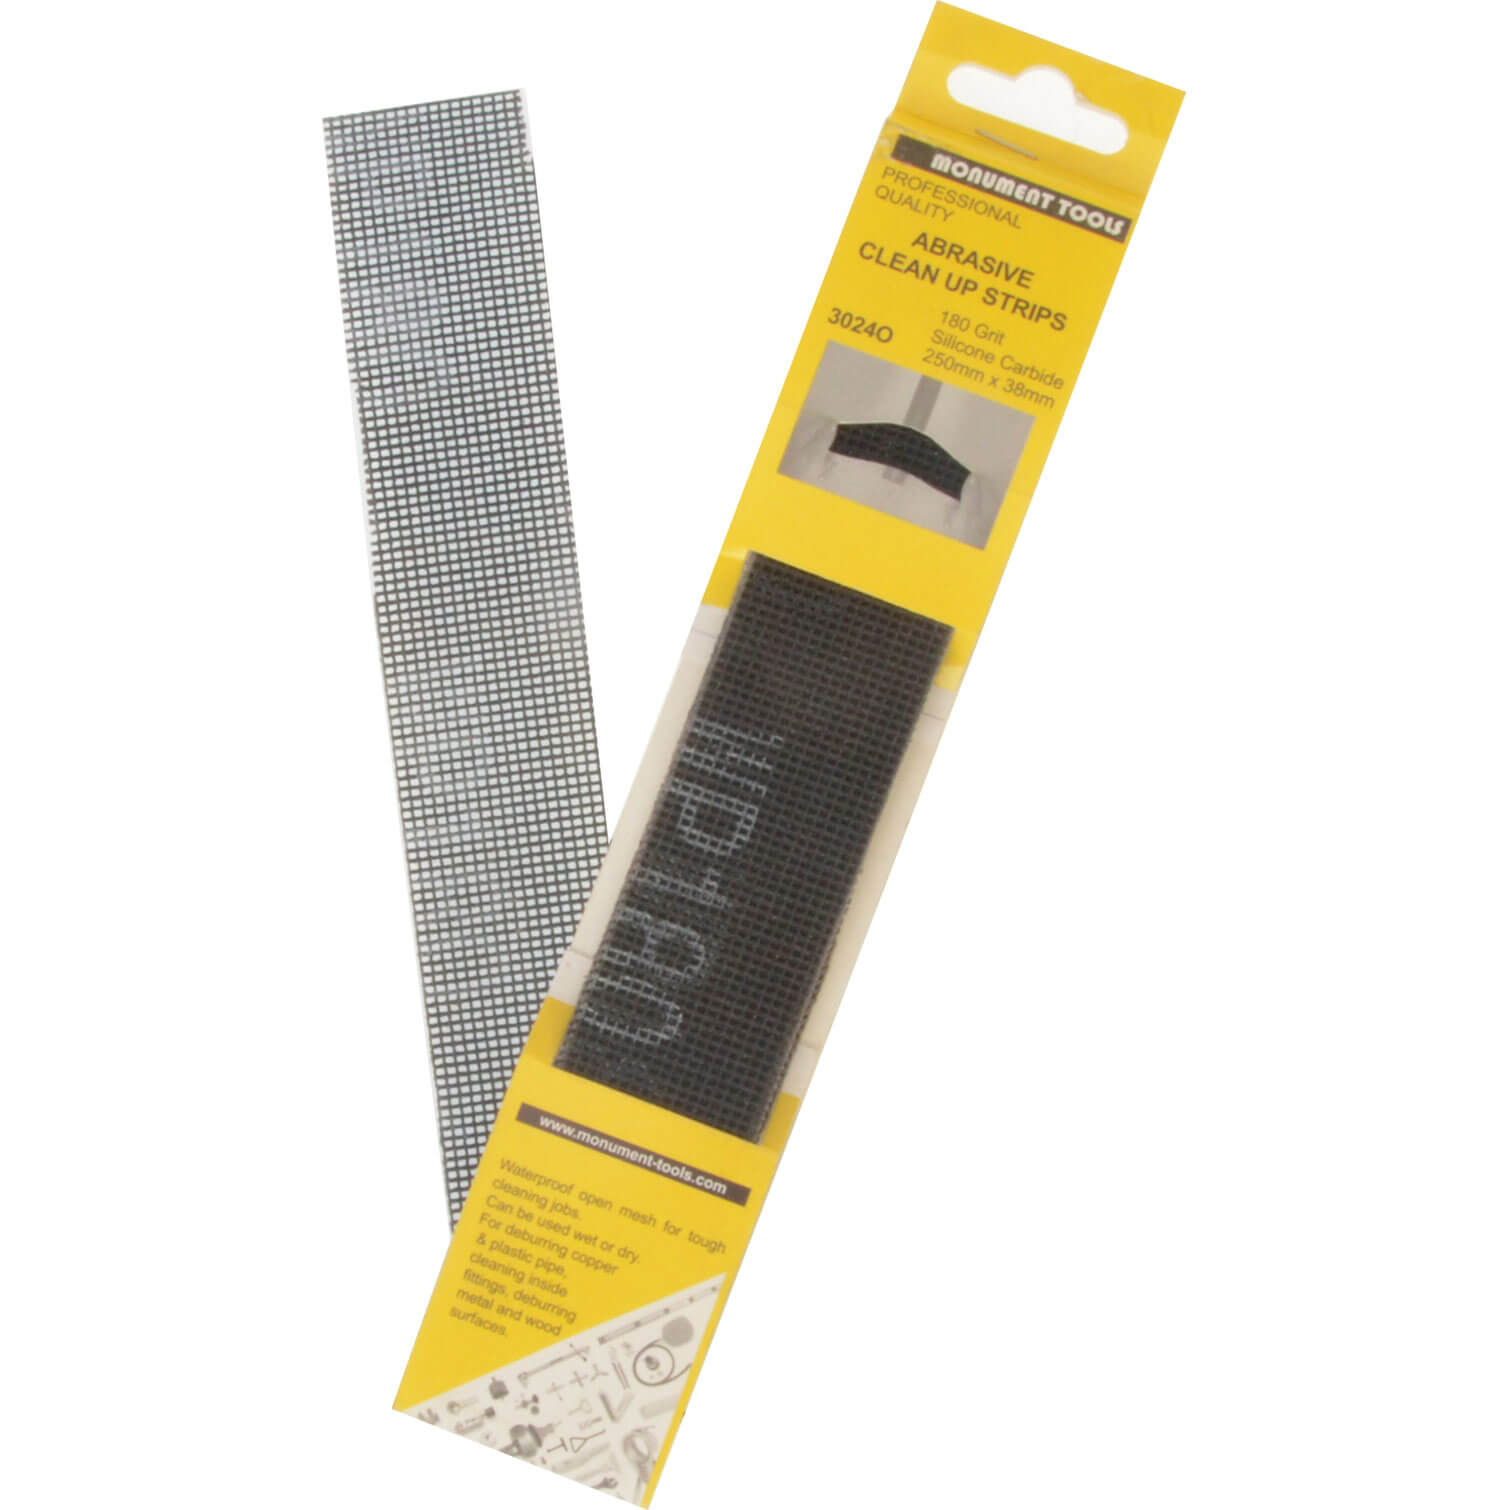 Image of Monument 3024 Abrasive Clean Up Strips Pack of 10